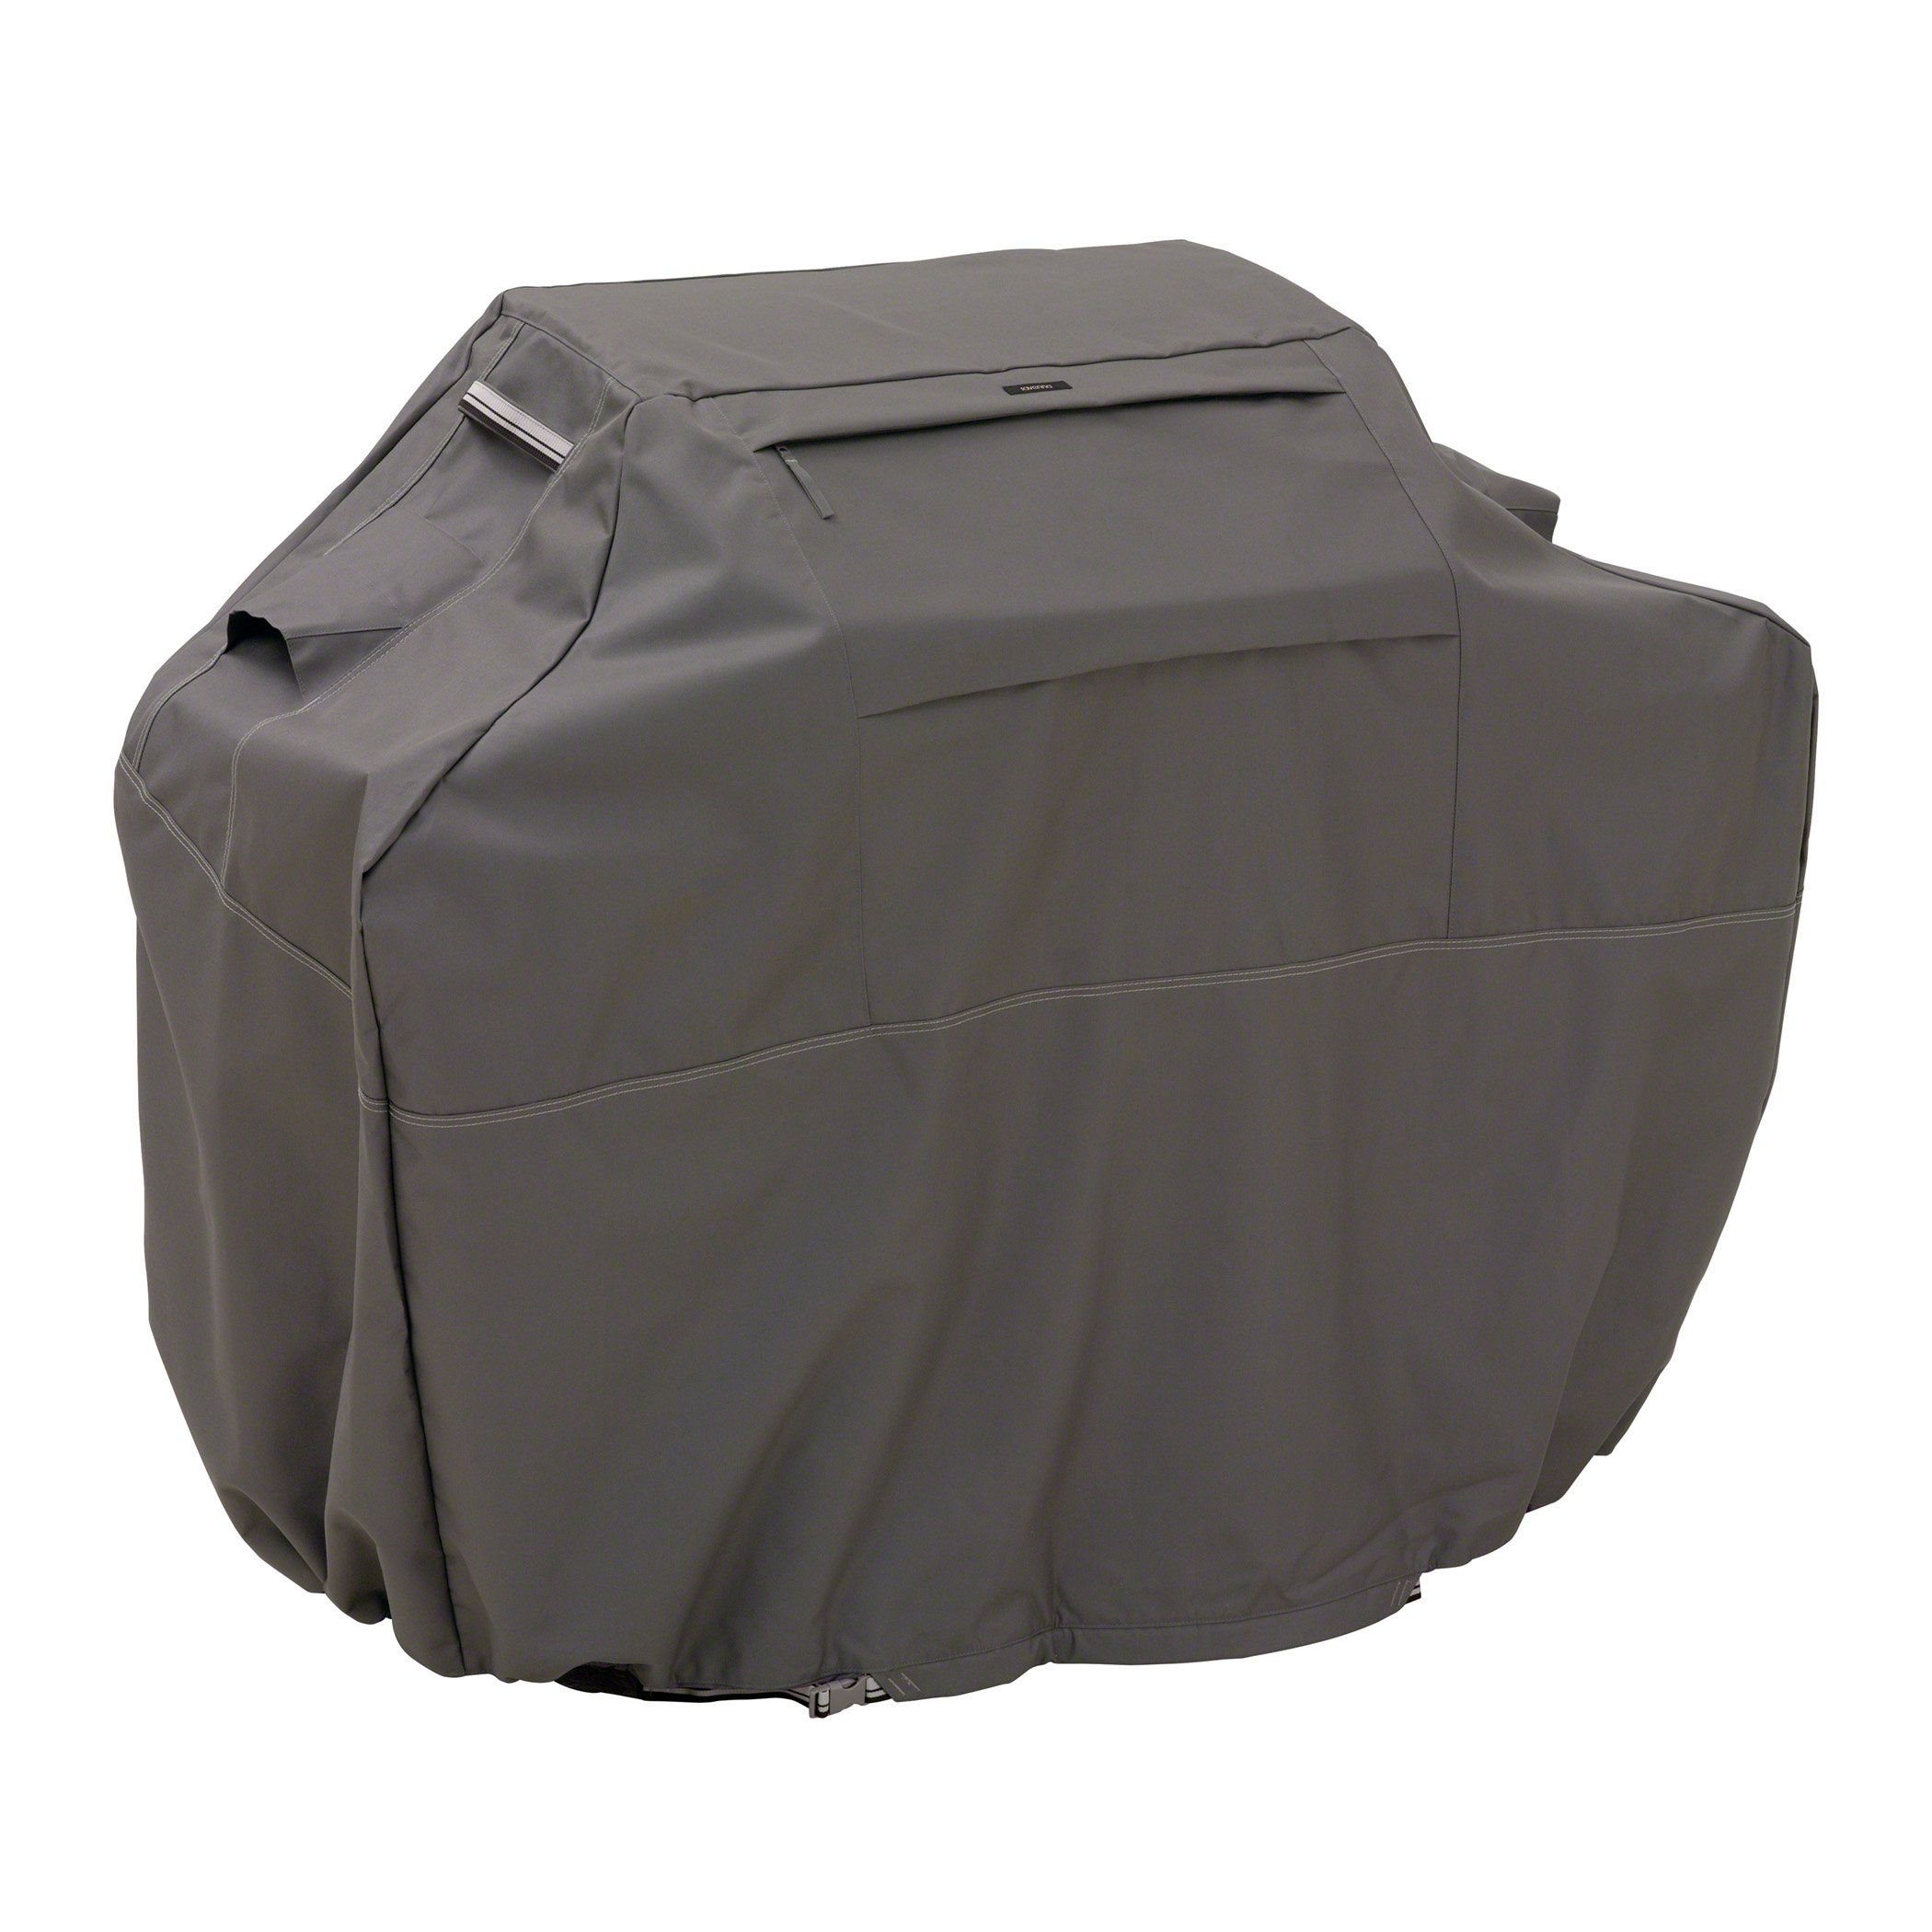 Classic Accessories Ravenna Grill Cover-Premium BBQ Cover with Reinforced Fade-Resistant Fabric, Large, 64-Inch product image